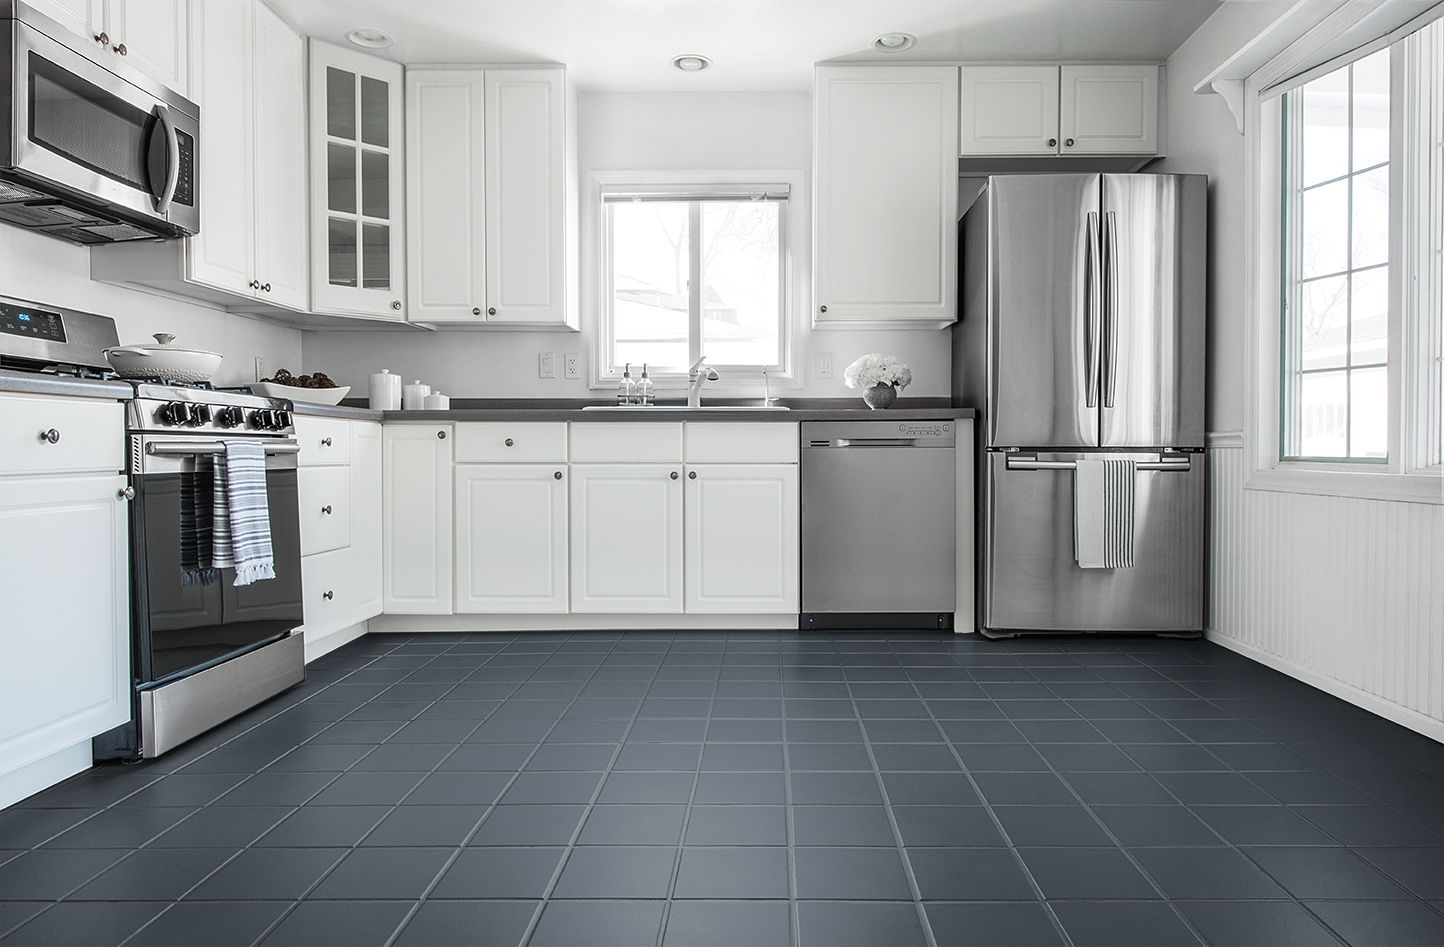 Rust Oleum Home Color Tool In 2020 Painted Kitchen Floors Kitchen Flooring Grey Tile Kitchen Floor